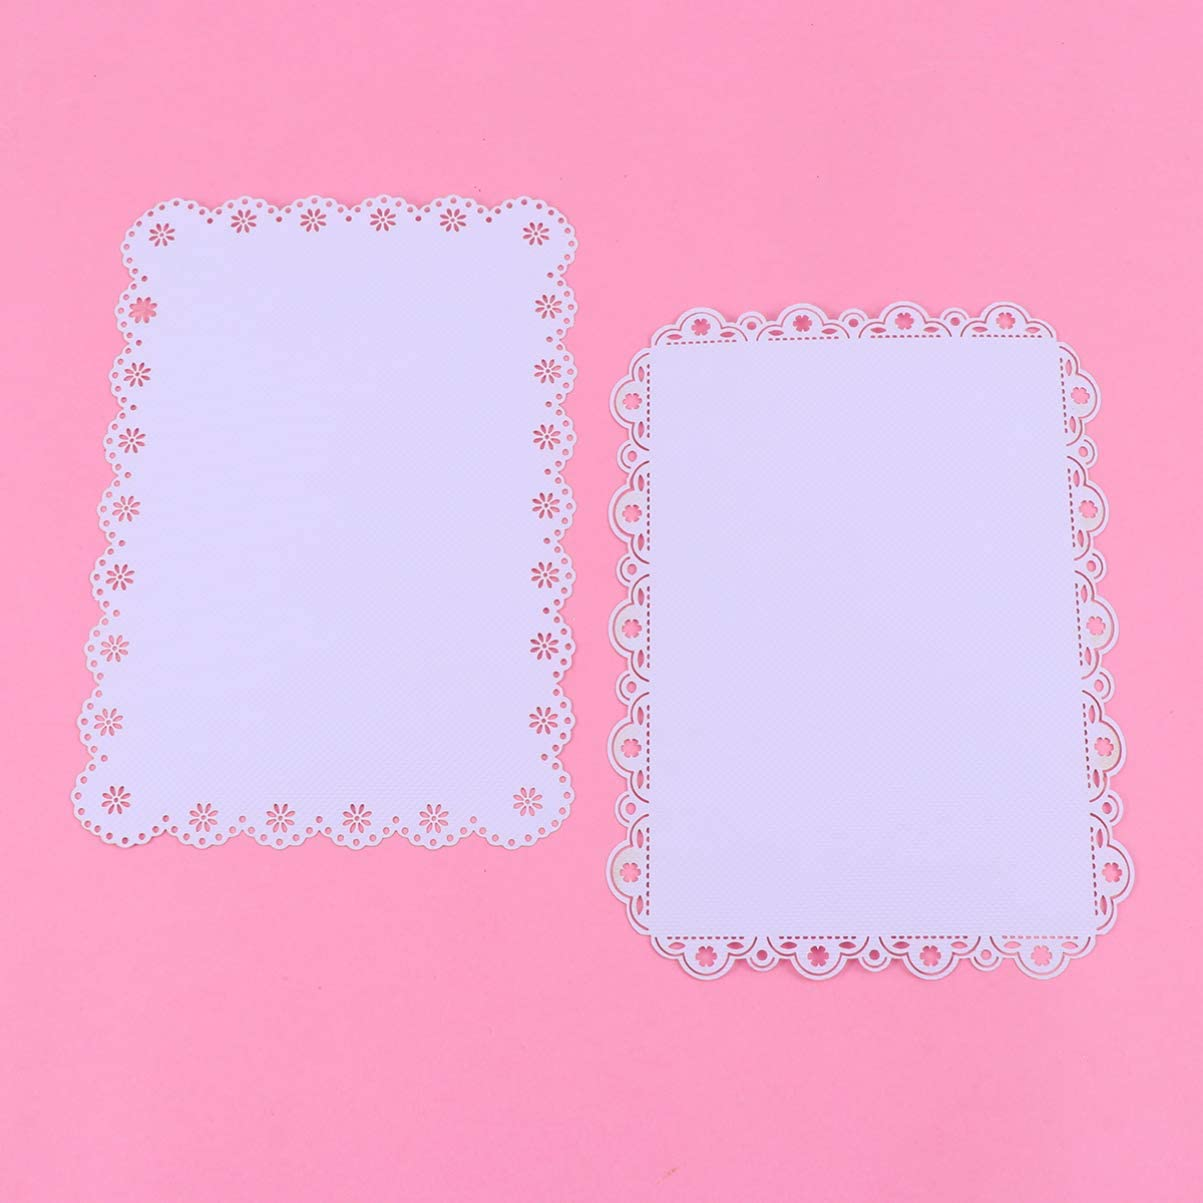 Amosfun 10Pcs Scrapbooking Background Paper Hollow out Paper Lace Doilies Backing Paper Decorative Paper for DIY Diary Photo Album